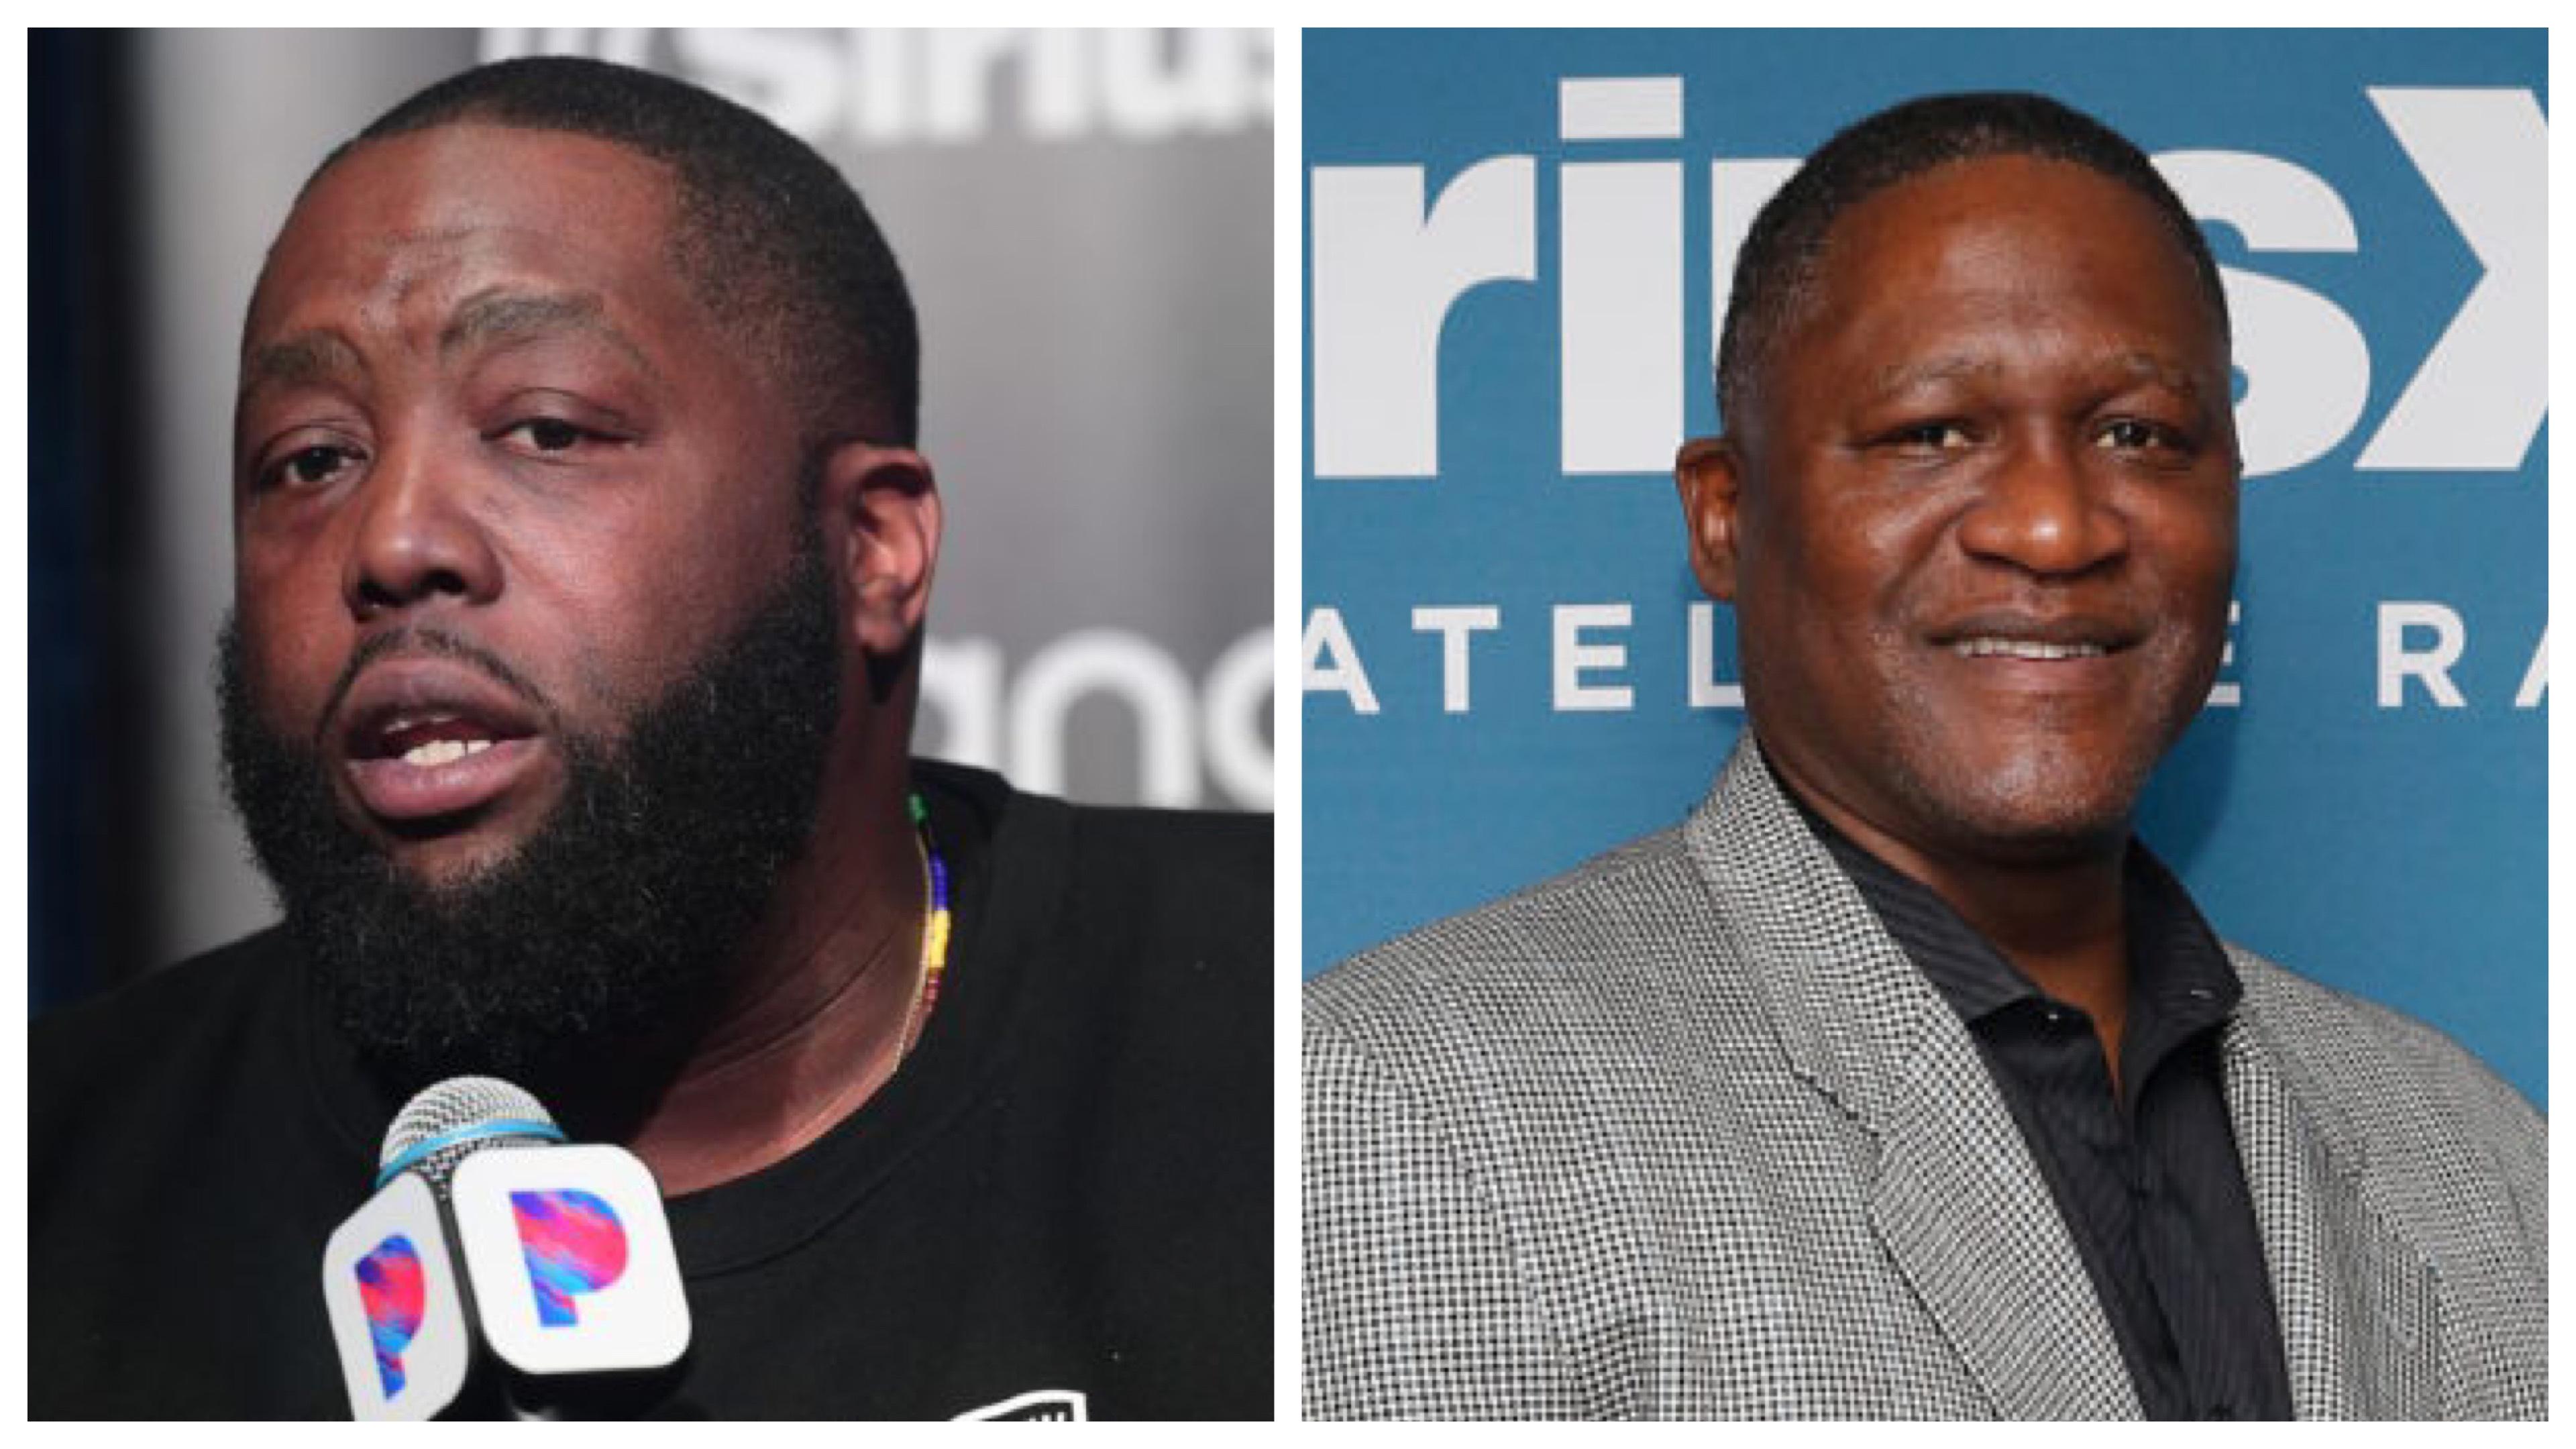 Killer Mike and Dominique Wilkins